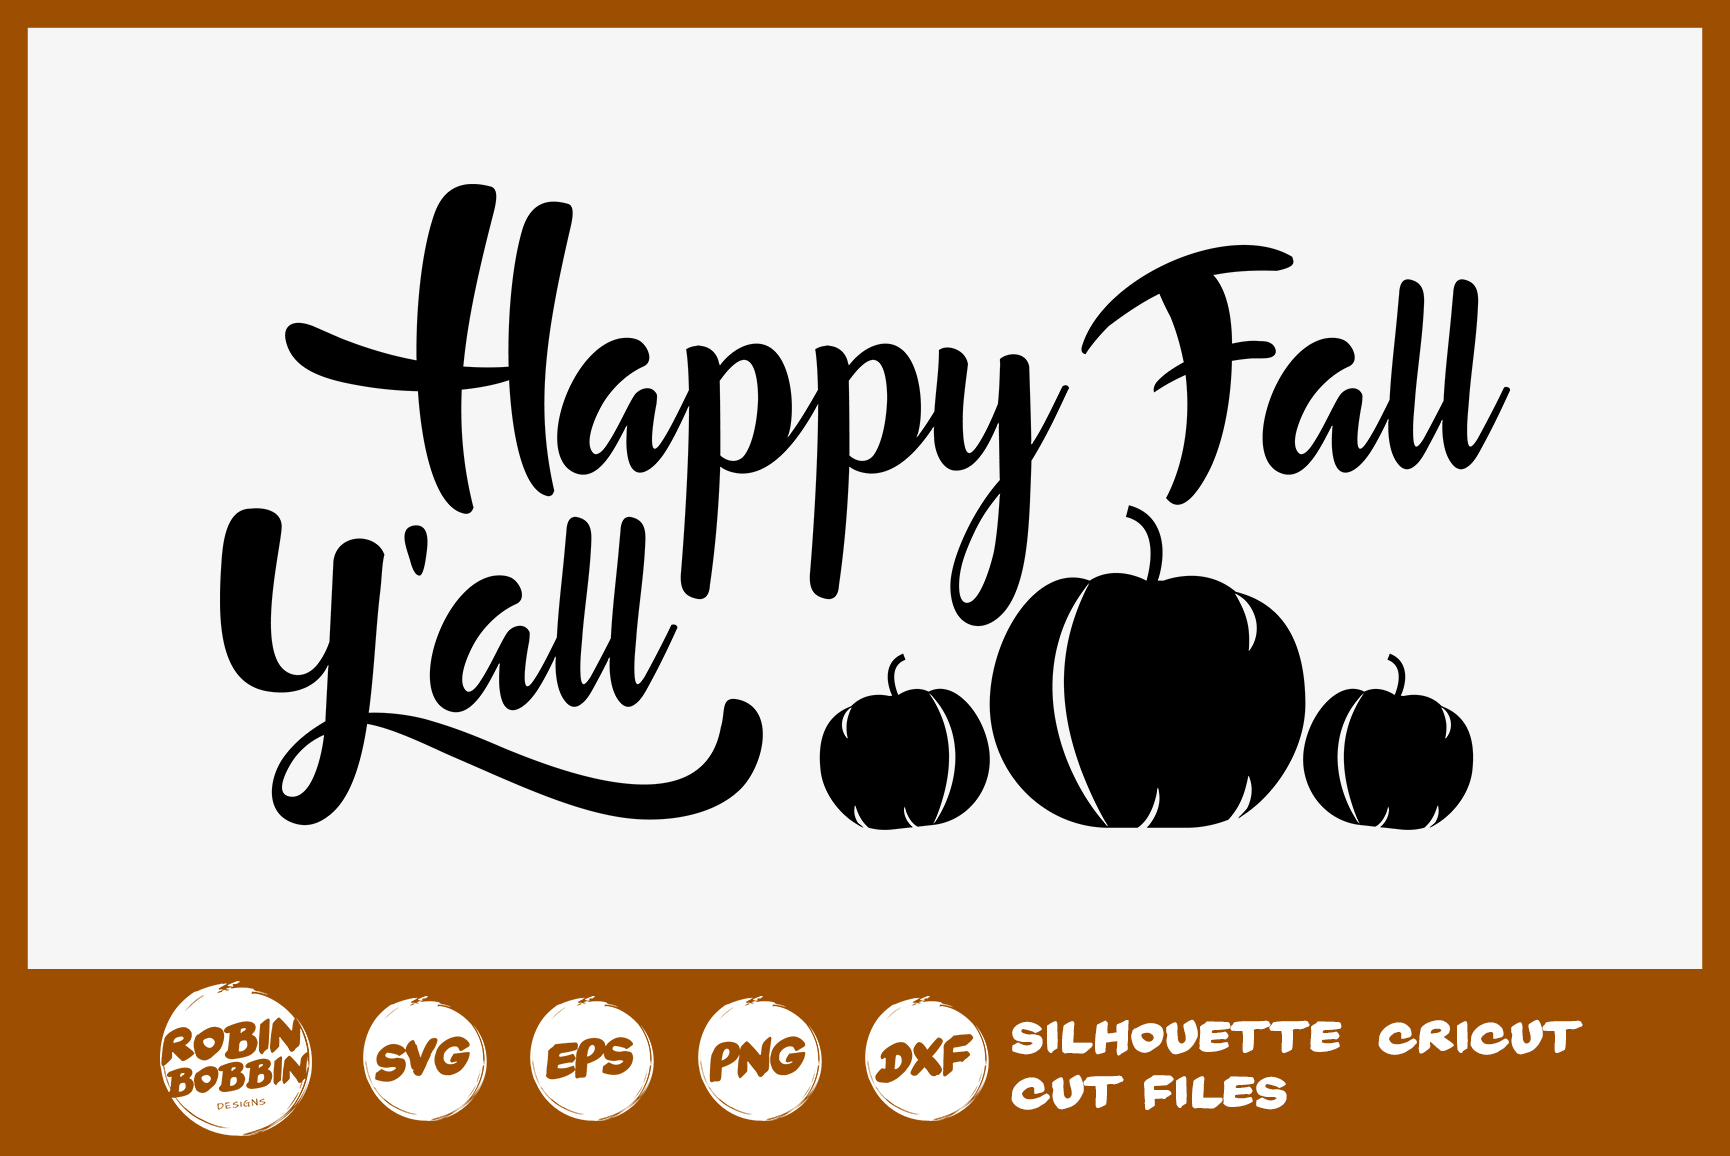 Happy Fall Y'all SVG - Fall Farmhouse Sign SVG example image 1